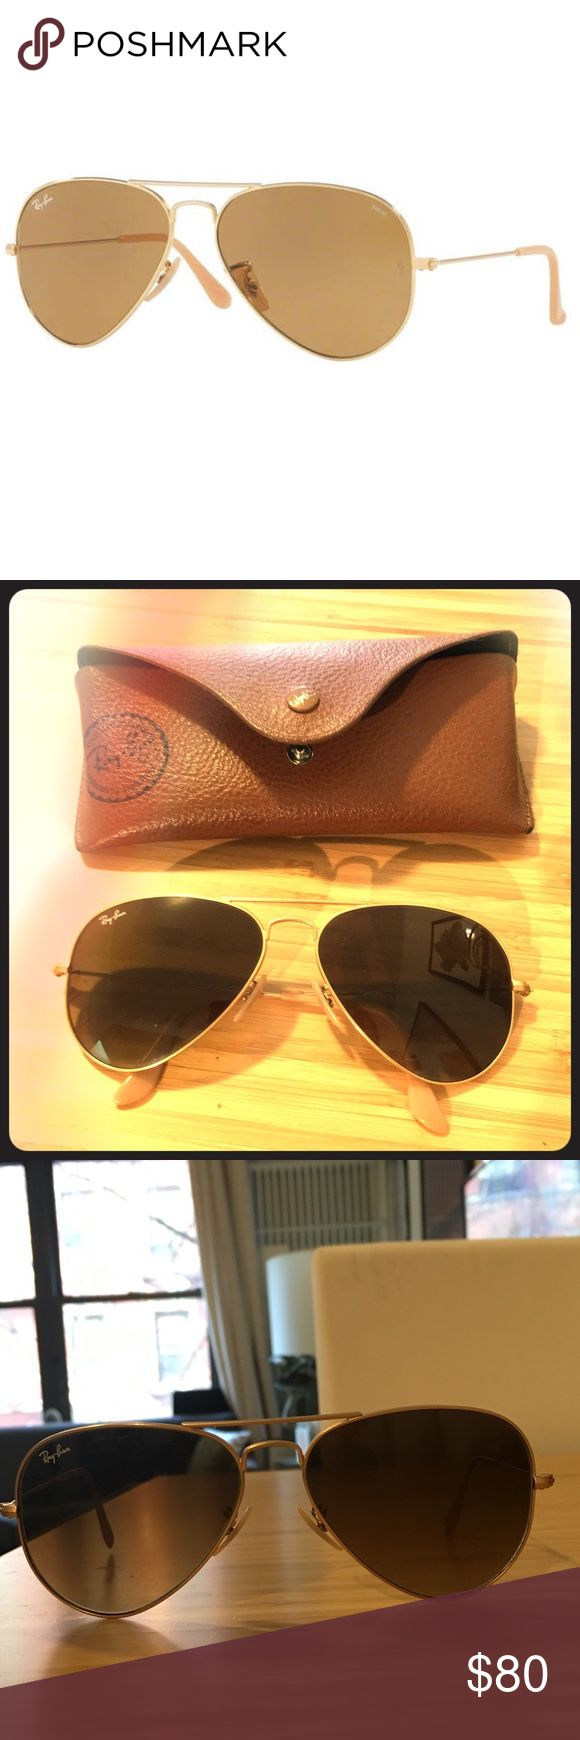 Ray Ban Aviators gold/Brown 55mm Lens RB-3025 Great preowned condition with no visible signs of wear. Was gifted a new pair so am selling these. Brown lenses with matte gold frame. 55mm lense. No scratches. Comes with Ray Ban case but am missing the cloth now, make me an offer! Ray-Ban Accessories Sunglasses